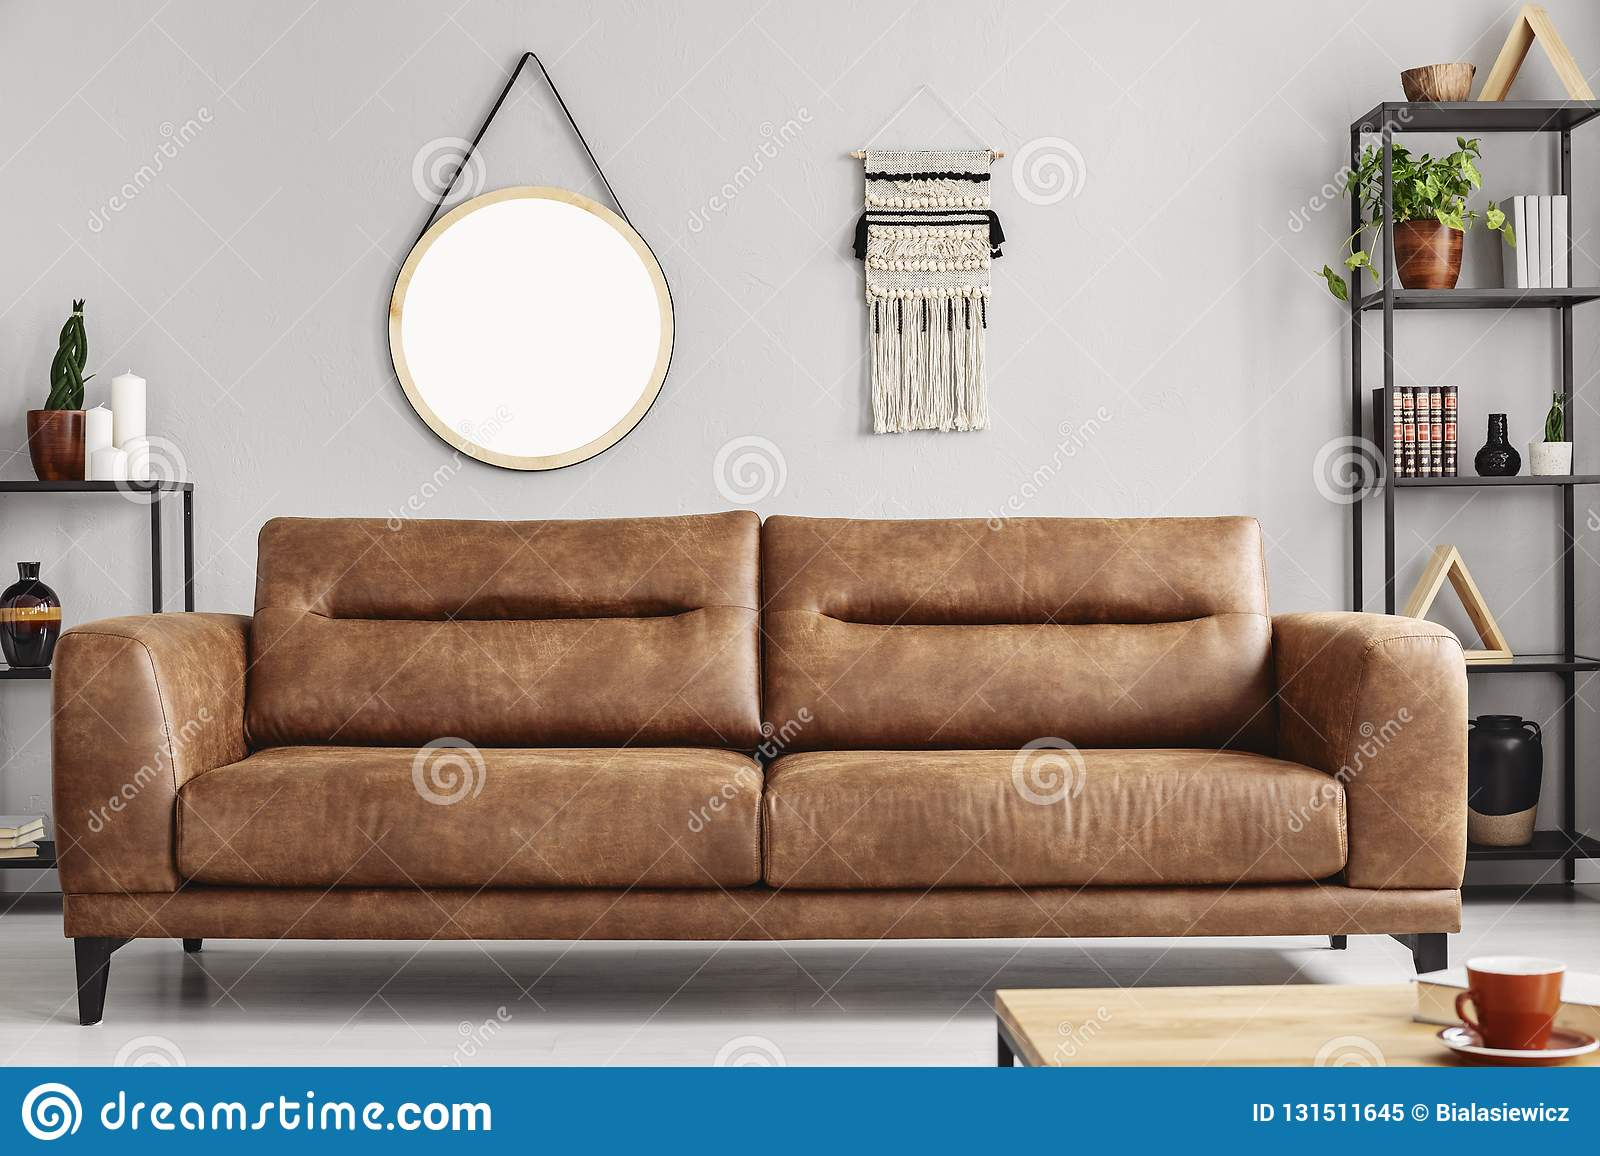 Mockup Of Round Mirror On Grey Wall In Living Room Real